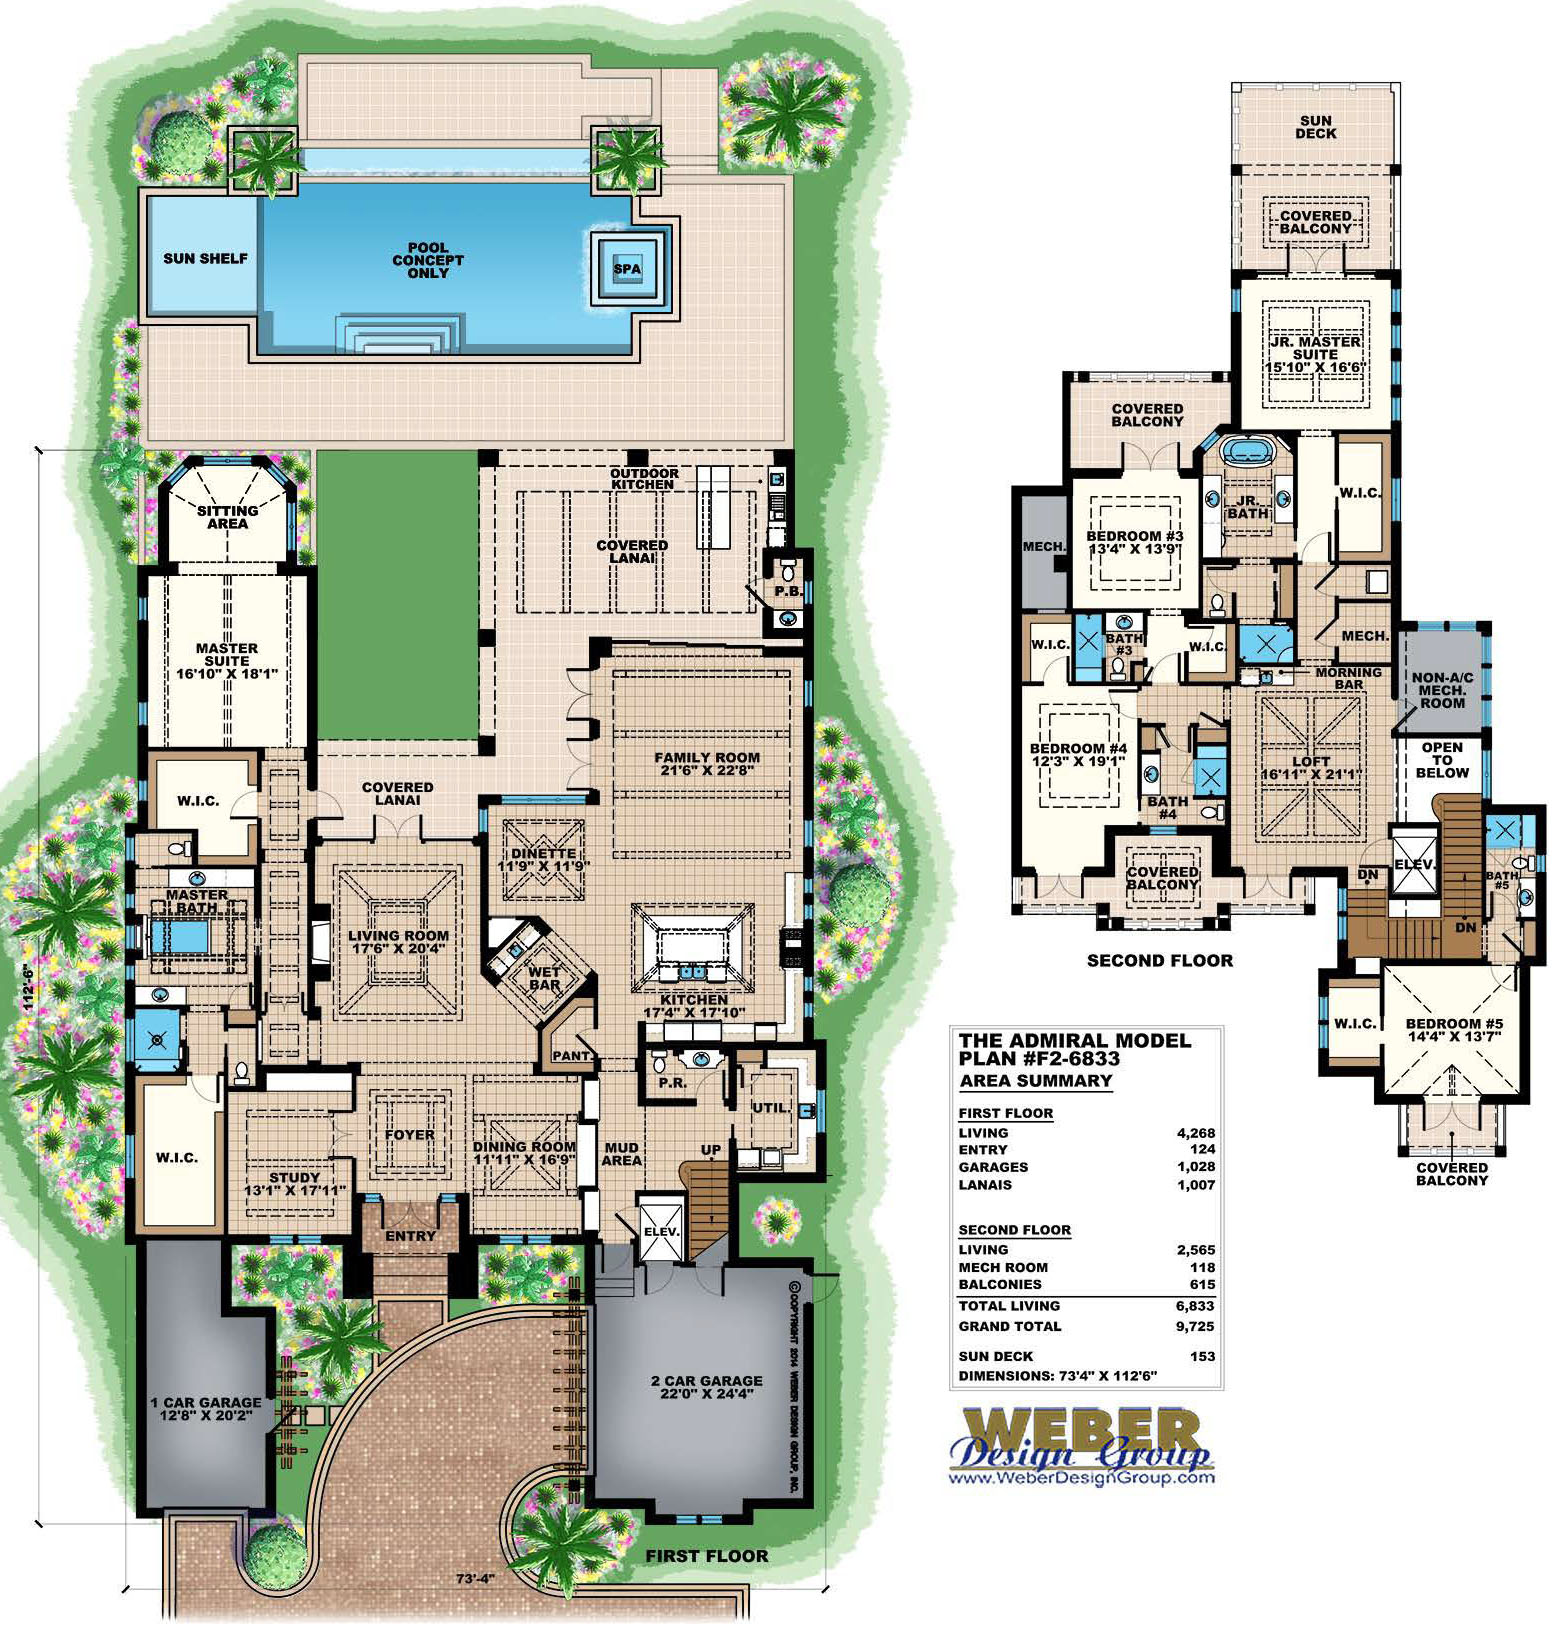 Luxury House Plans: Modern Luxury, Beach, Coastal ... on house plans 2 bed, house plans 3 bed, house plans min, house plans 6 bed, house plans garage, house plans 5 bed,